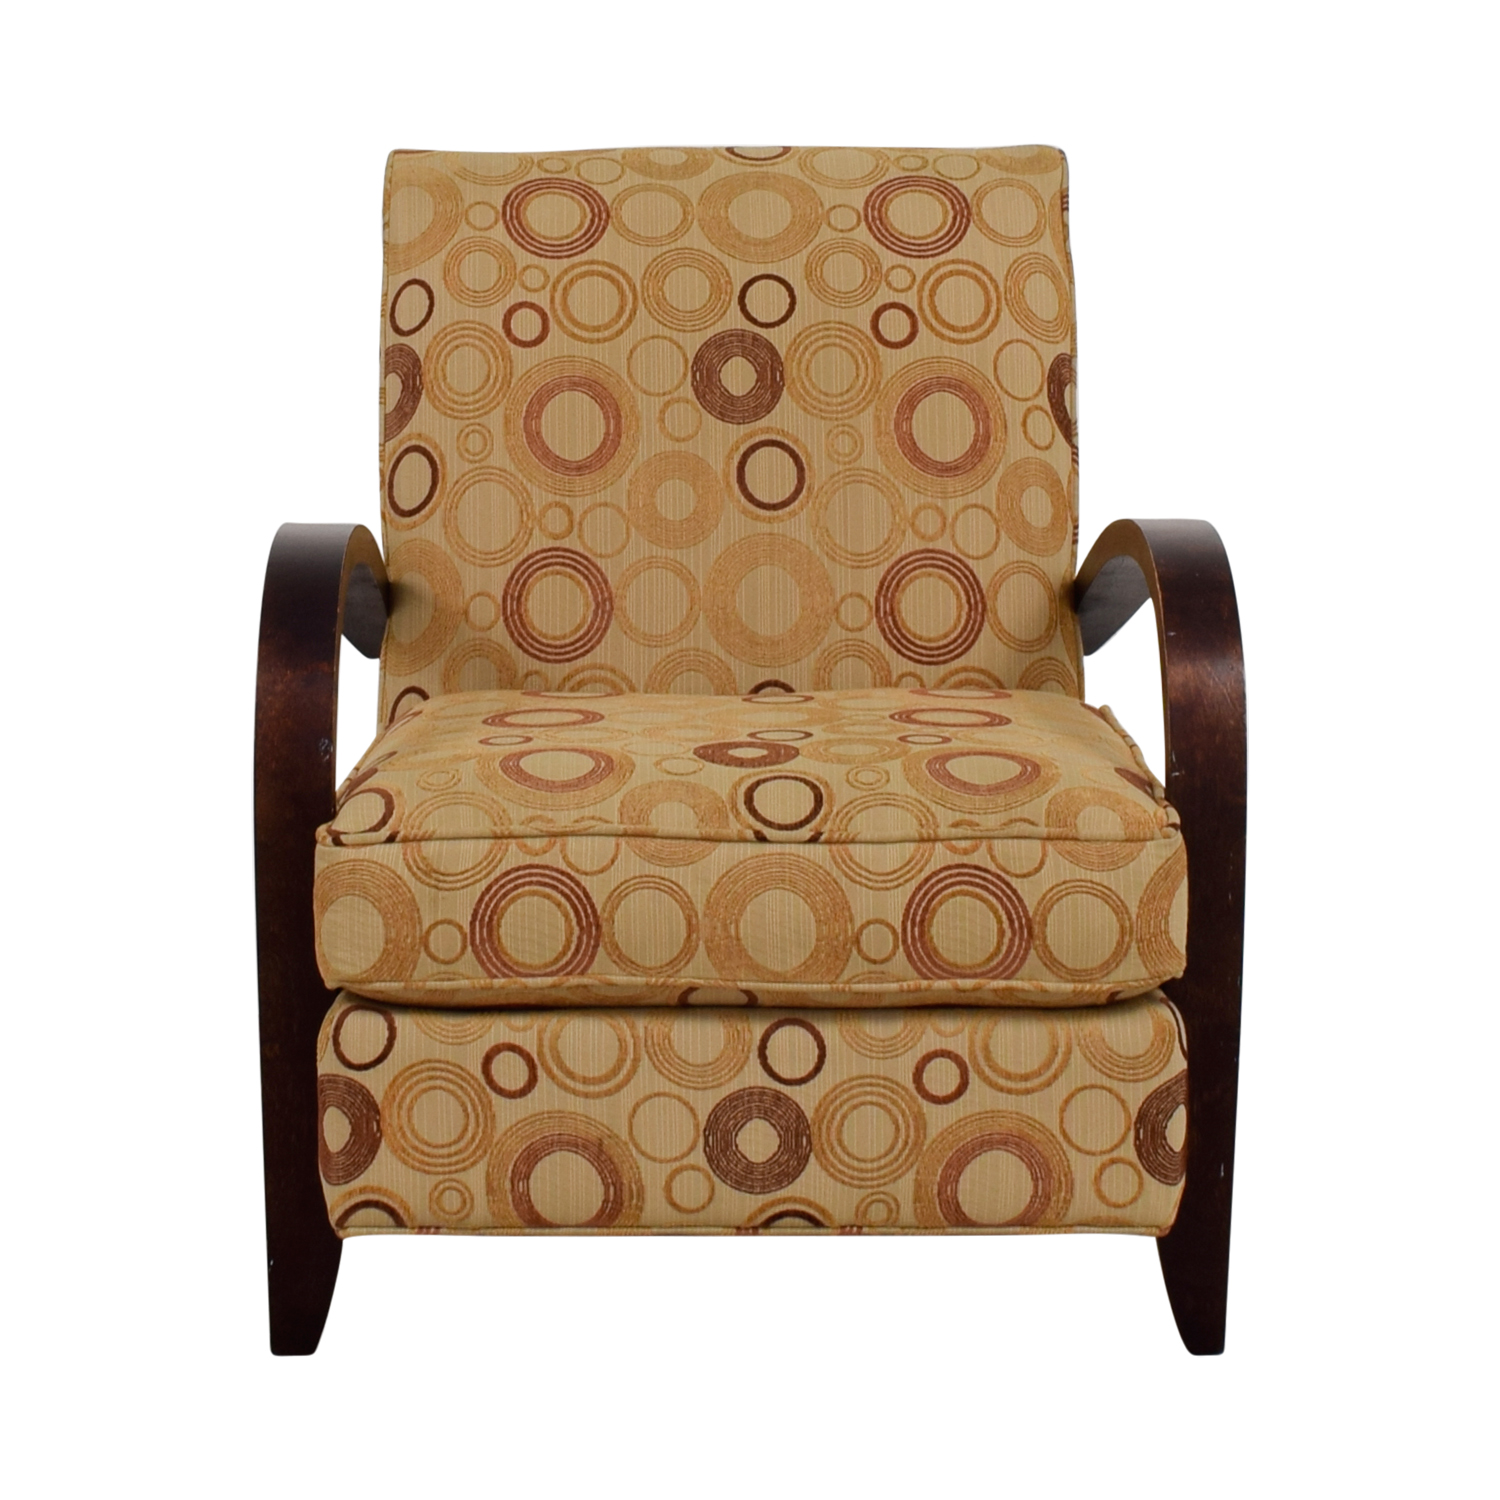 Pier 1 Imports Circle Accent Chair Coupon